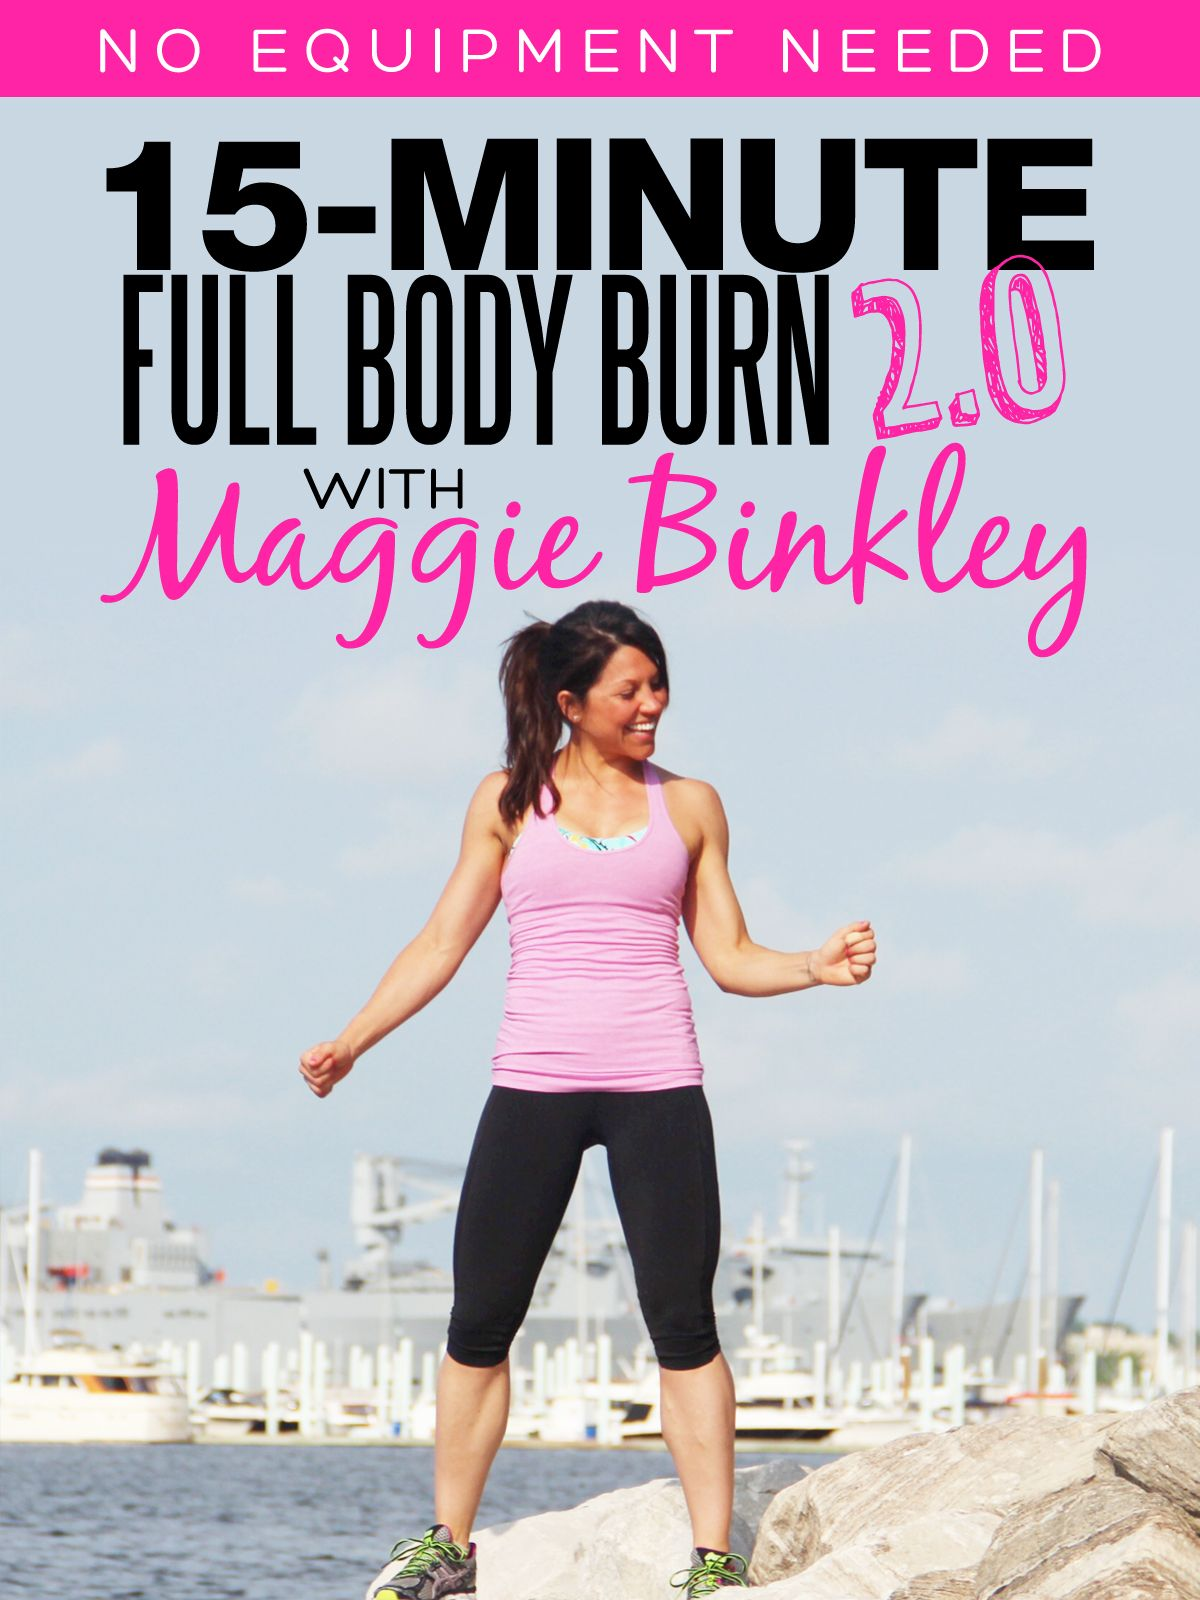 Part of SERIES 2.0 and available on Amazon, free for Prime members! Find  all of Maggie's bodyweight workouts on Amazon Video now. 15-Minute ...